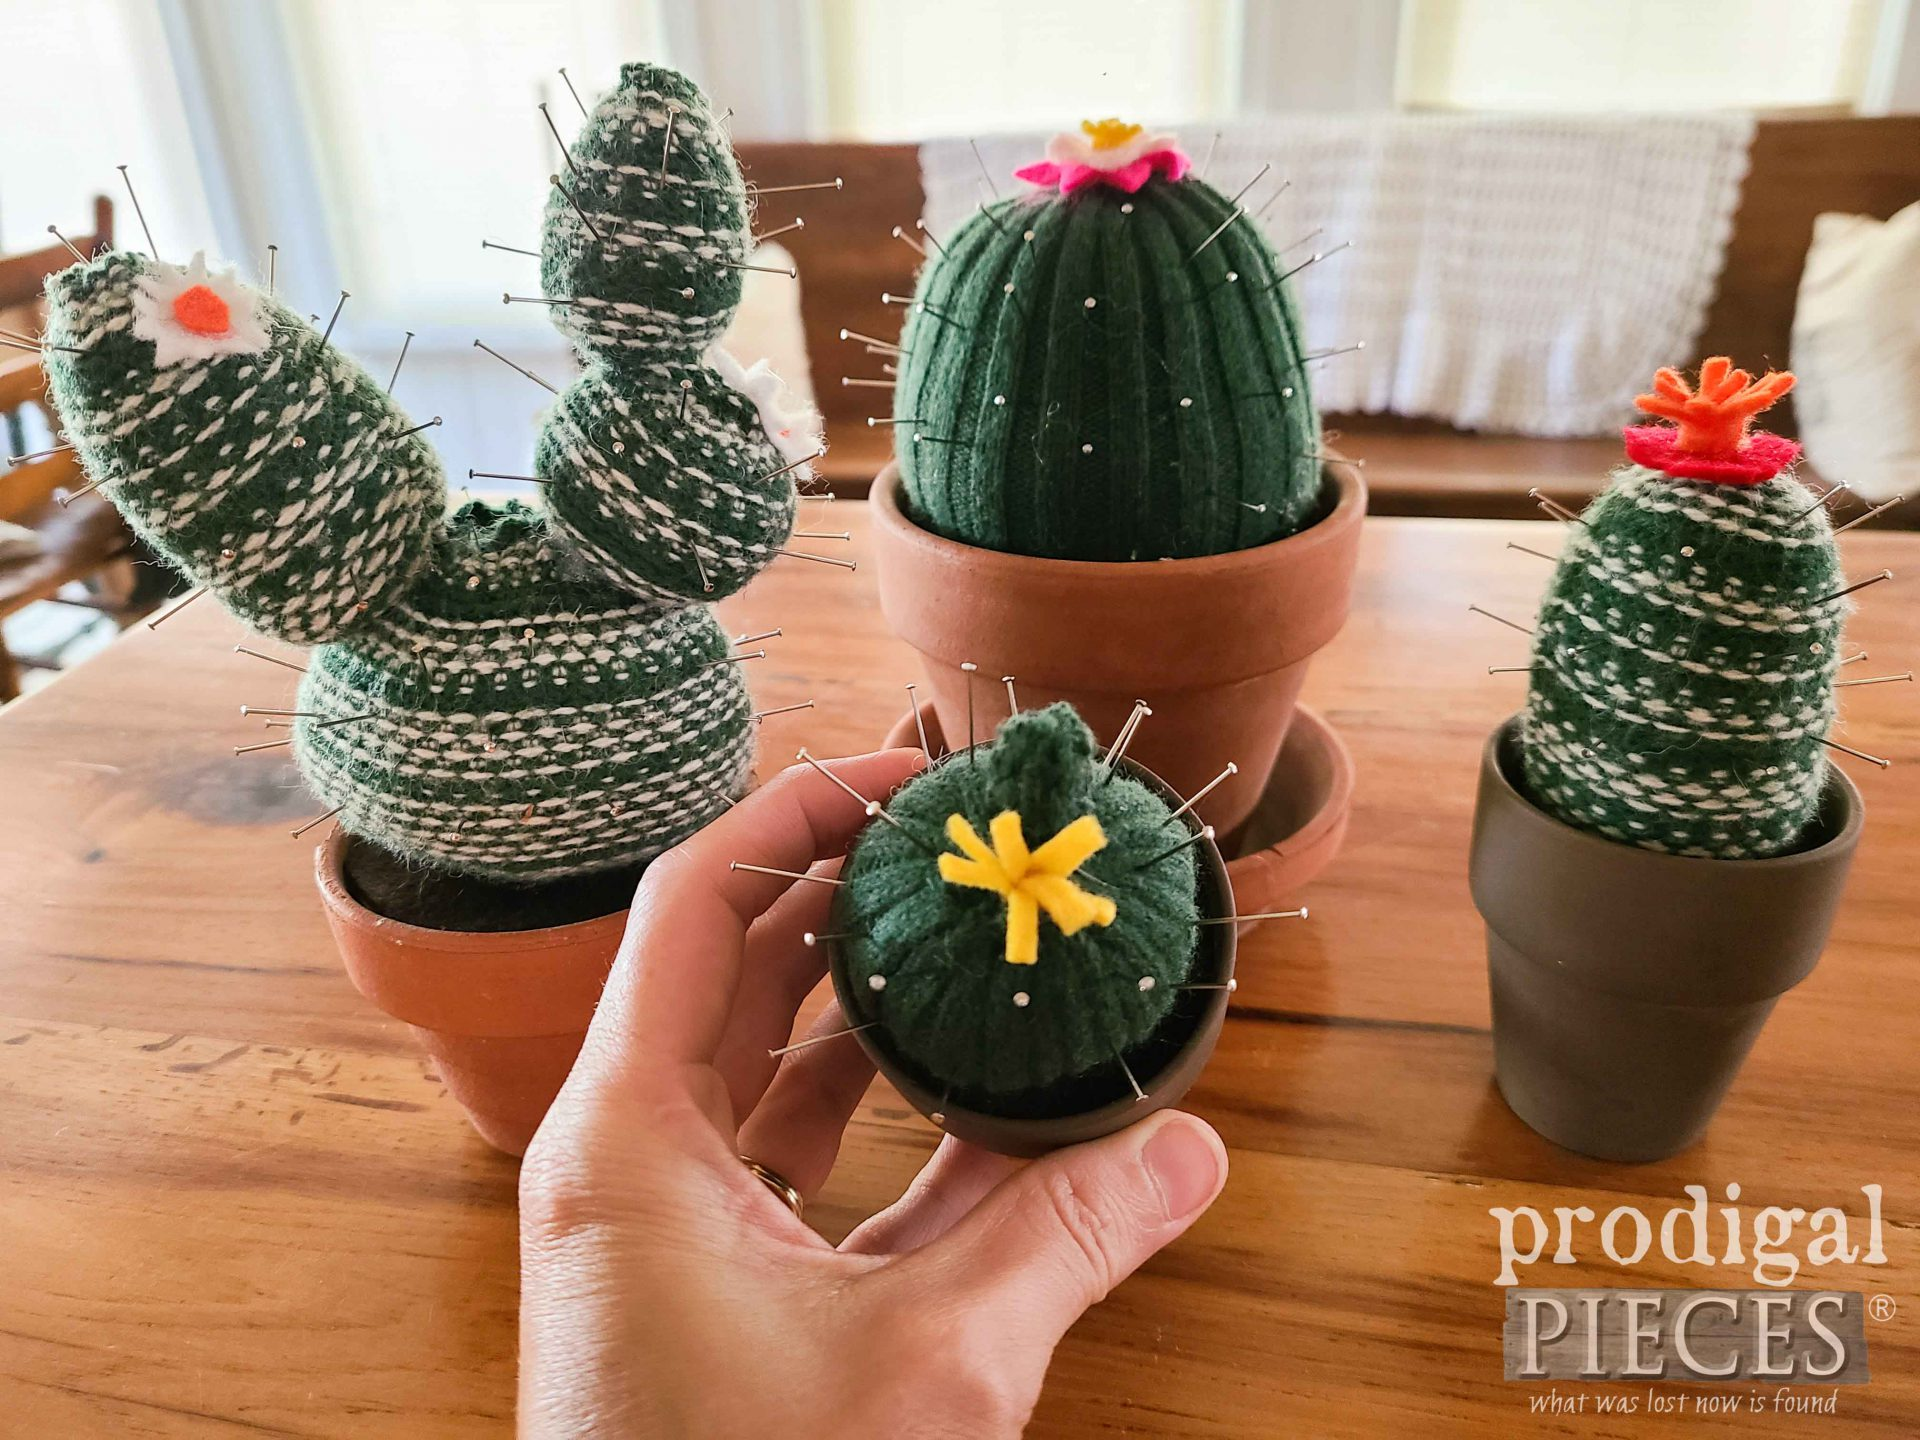 DIY Handmade Cactus Pincushion from Upcycled Sweater | prodigalpieces.com #prodigalpieces #diy #handmade #succulent #sewing